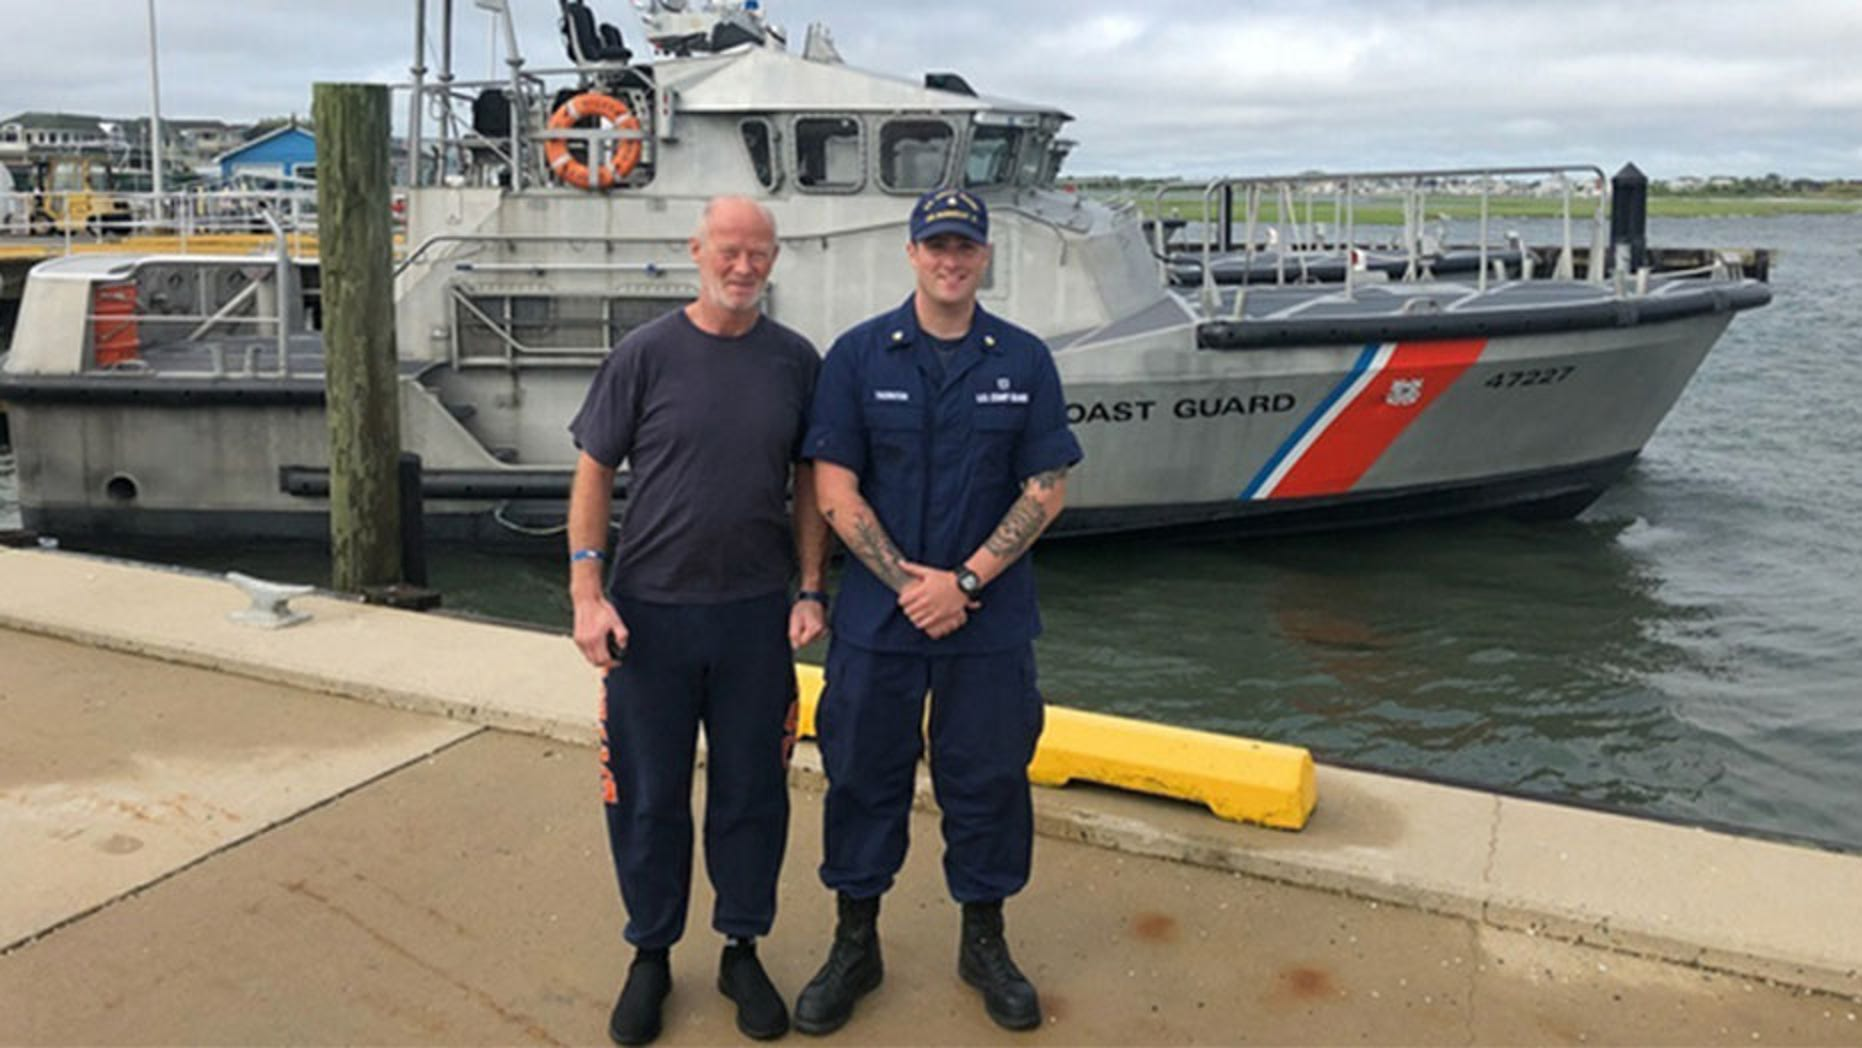 Duncan Hutchison had to be rescued by the Coast Guard off New Jersey after his boat -- which he intended to row all the way to Scotland -- drifted off course because of bad weather.